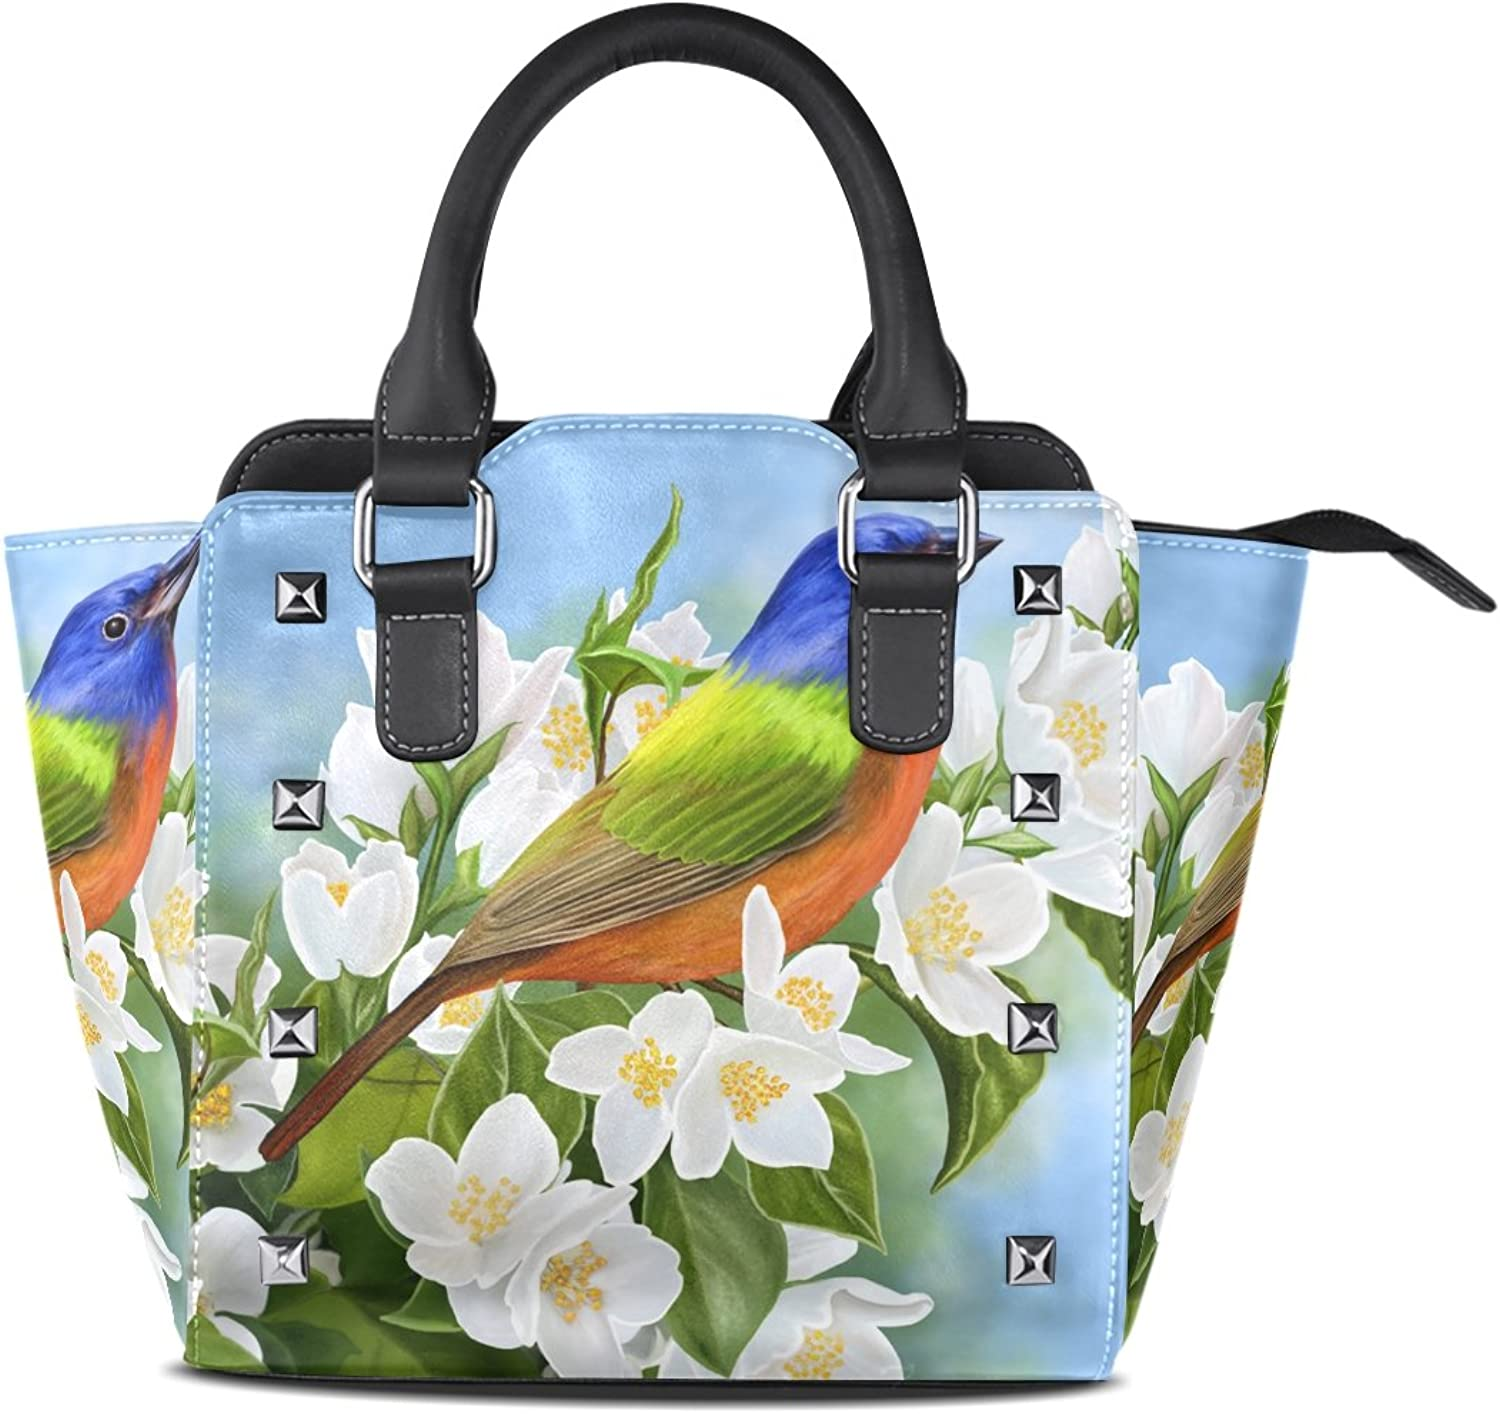 My Little Nest Women's Top Handle Satchel Handbag Cute Bird Jasmine Branch Ladies PU Leather Shoulder Bag Crossbody Bag